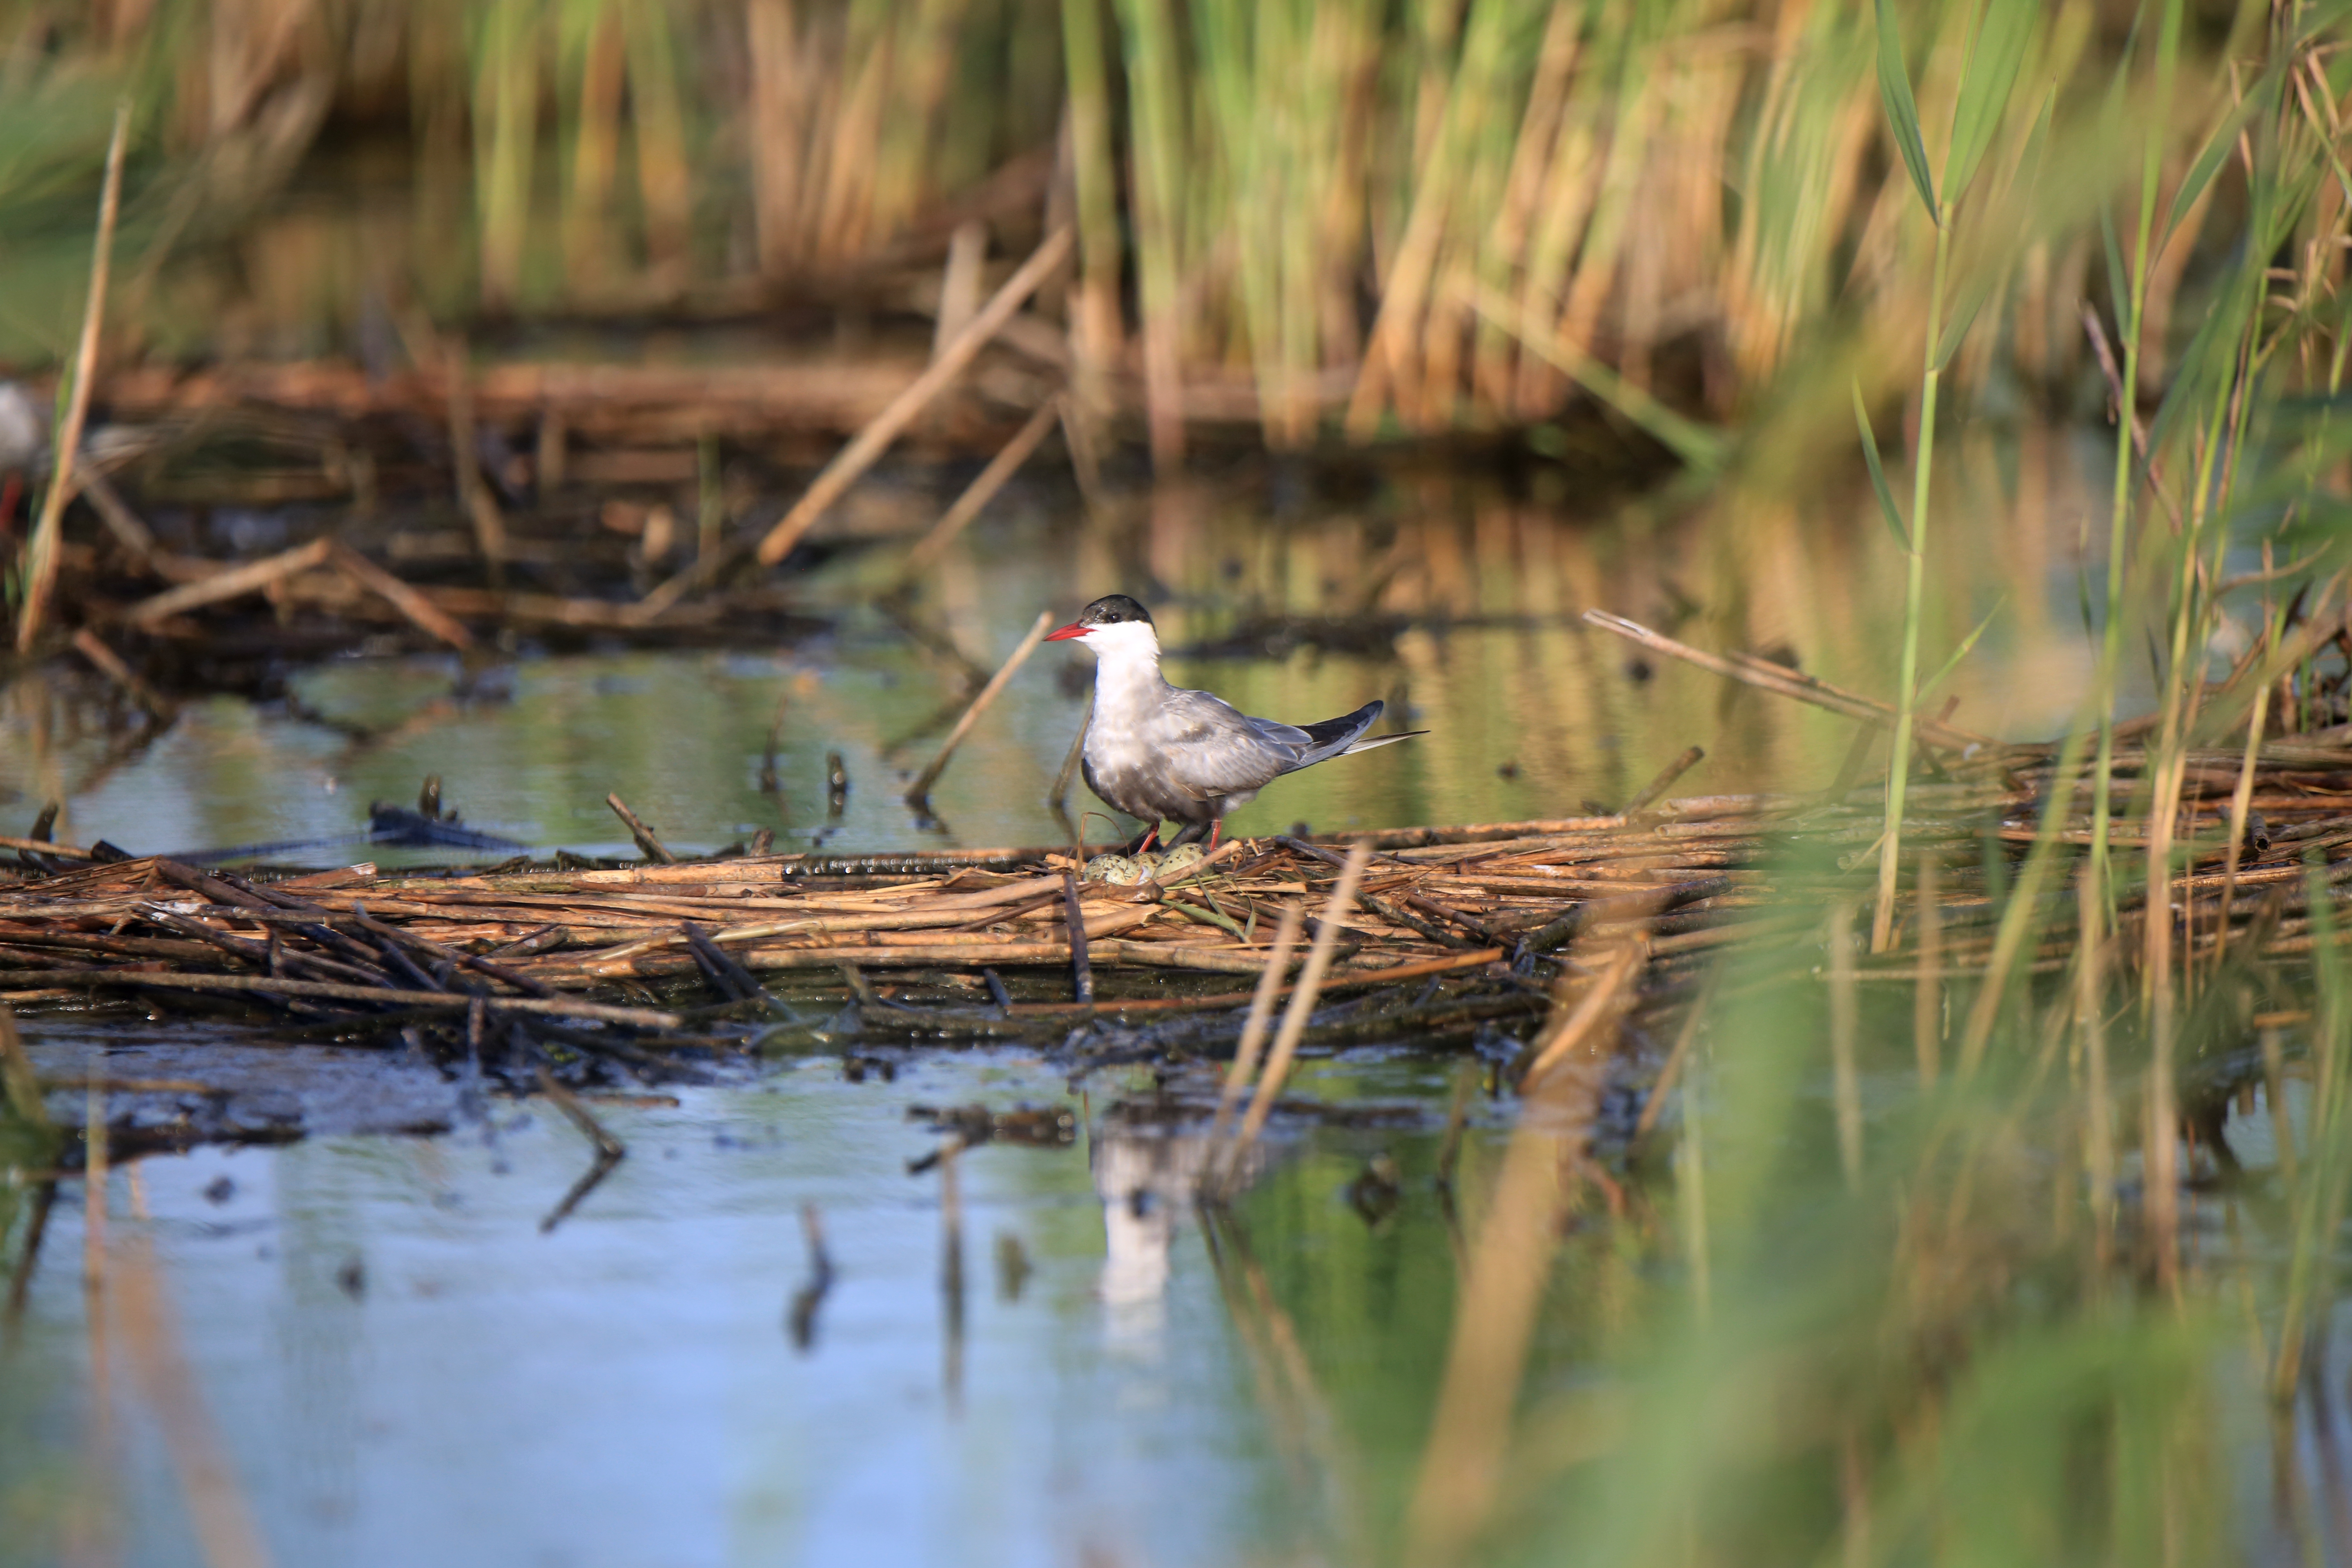 Conservation effort bringing the birds back to our wetlands